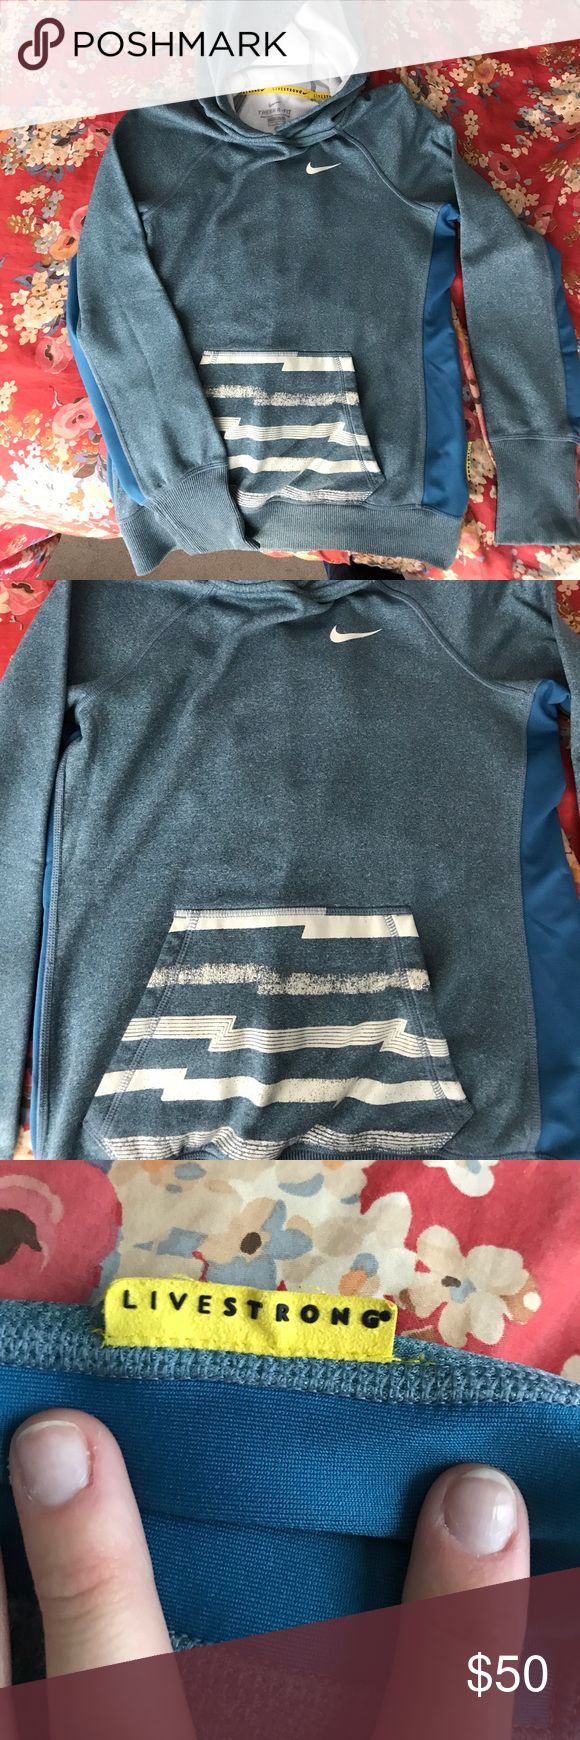 Nike Livestrong Sweatshirt RARE Nike Livestrong Sweatshirt!! Size small! Really warm Therma-Fit technology. Great for athletes or anyone on the go! Really soft fleece on the inside, and lightweight. Nike Tops Sweatshirts & Hoodies